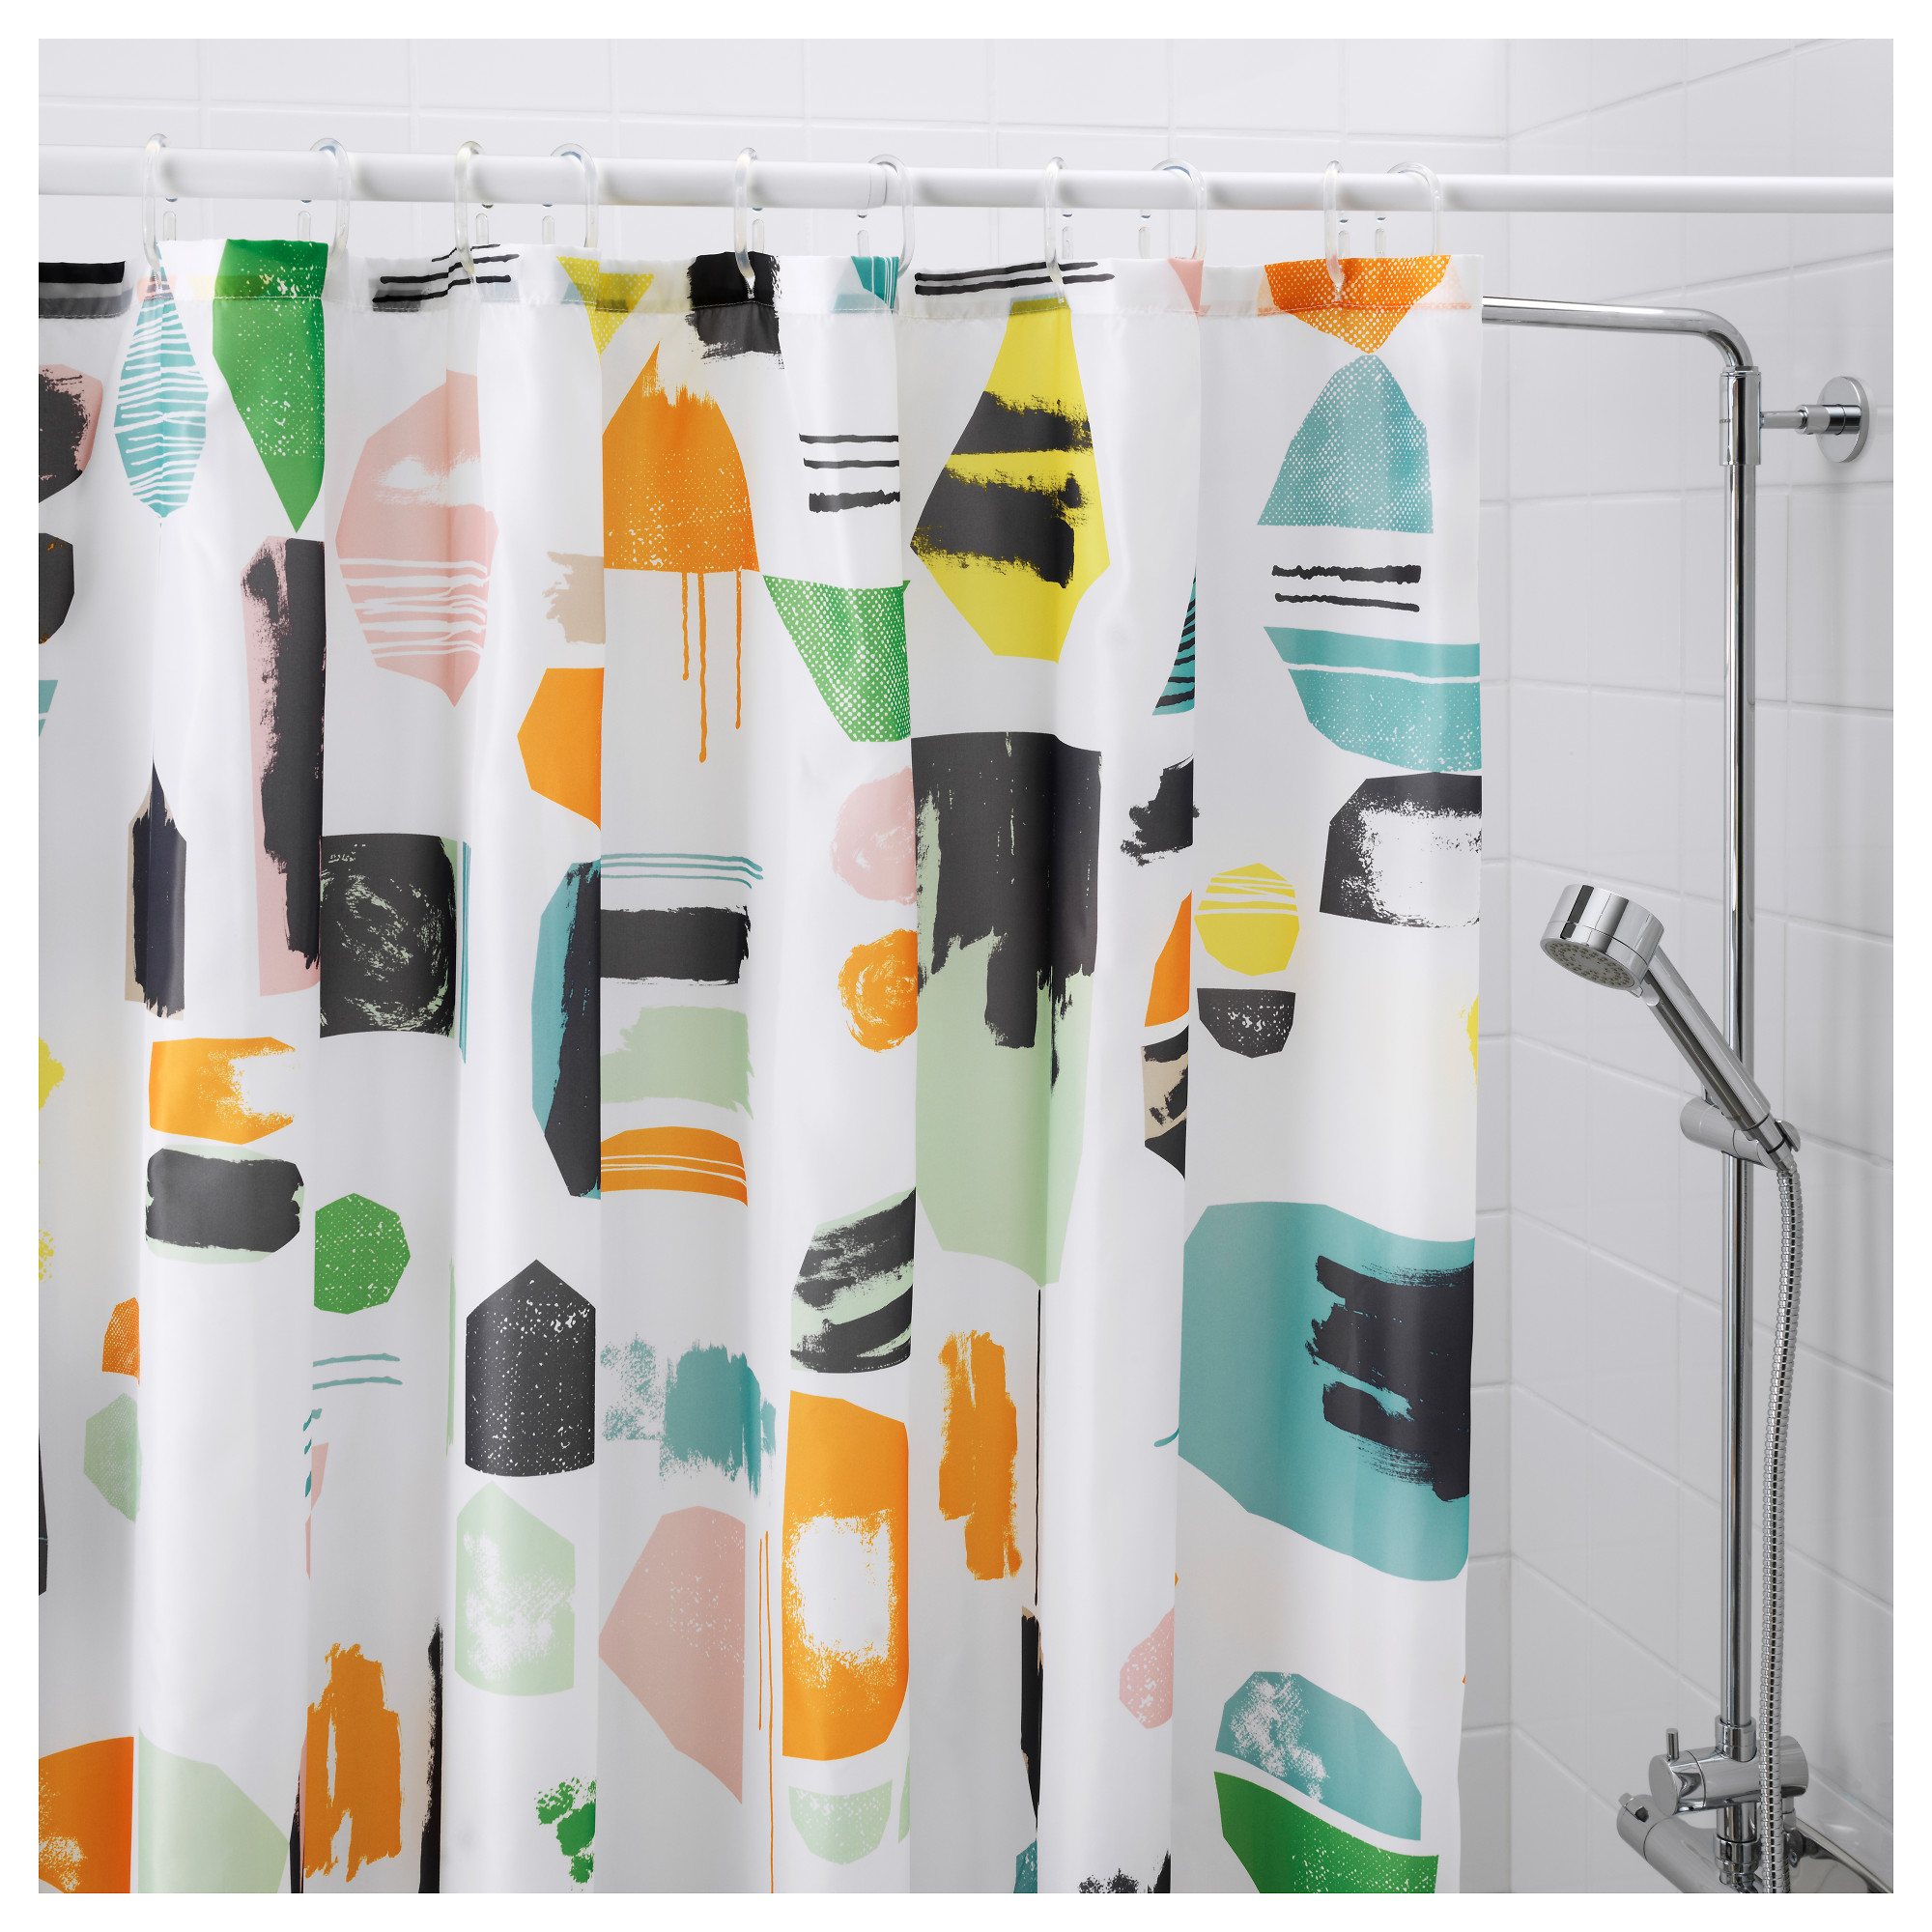 Ikea Shower Curtain for Best Your Bathroom Decoration: Cloth Shower Curtains | Ikea Shower Curtain | Extra Long Shower Curtain Target